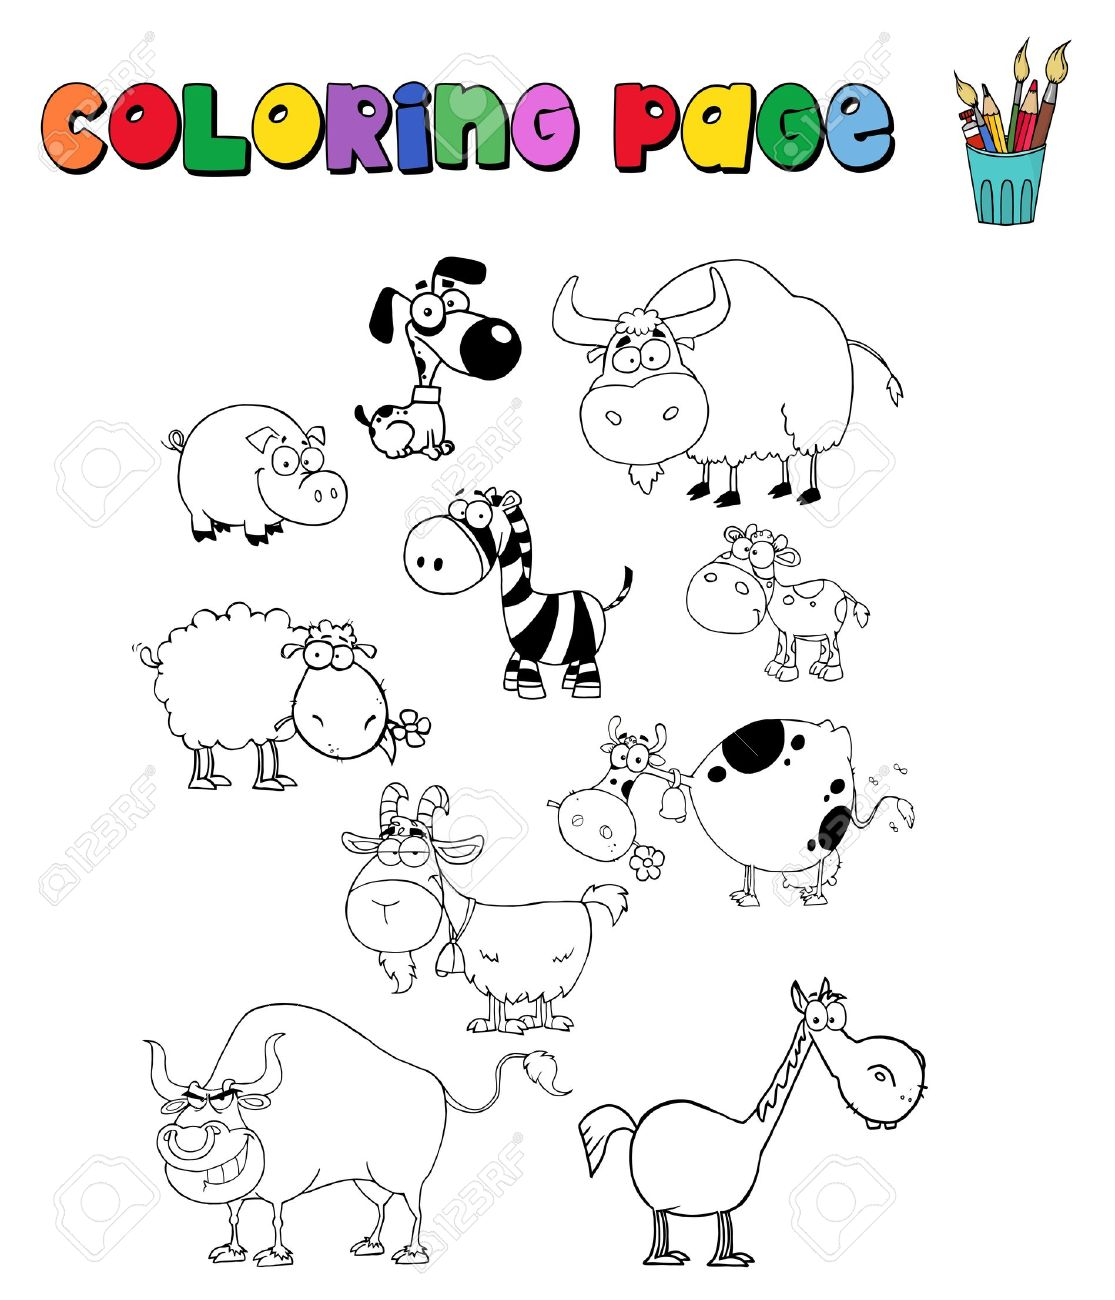 Coloring Page With Farm Animals Royalty Free Cliparts, Vectors, And ...